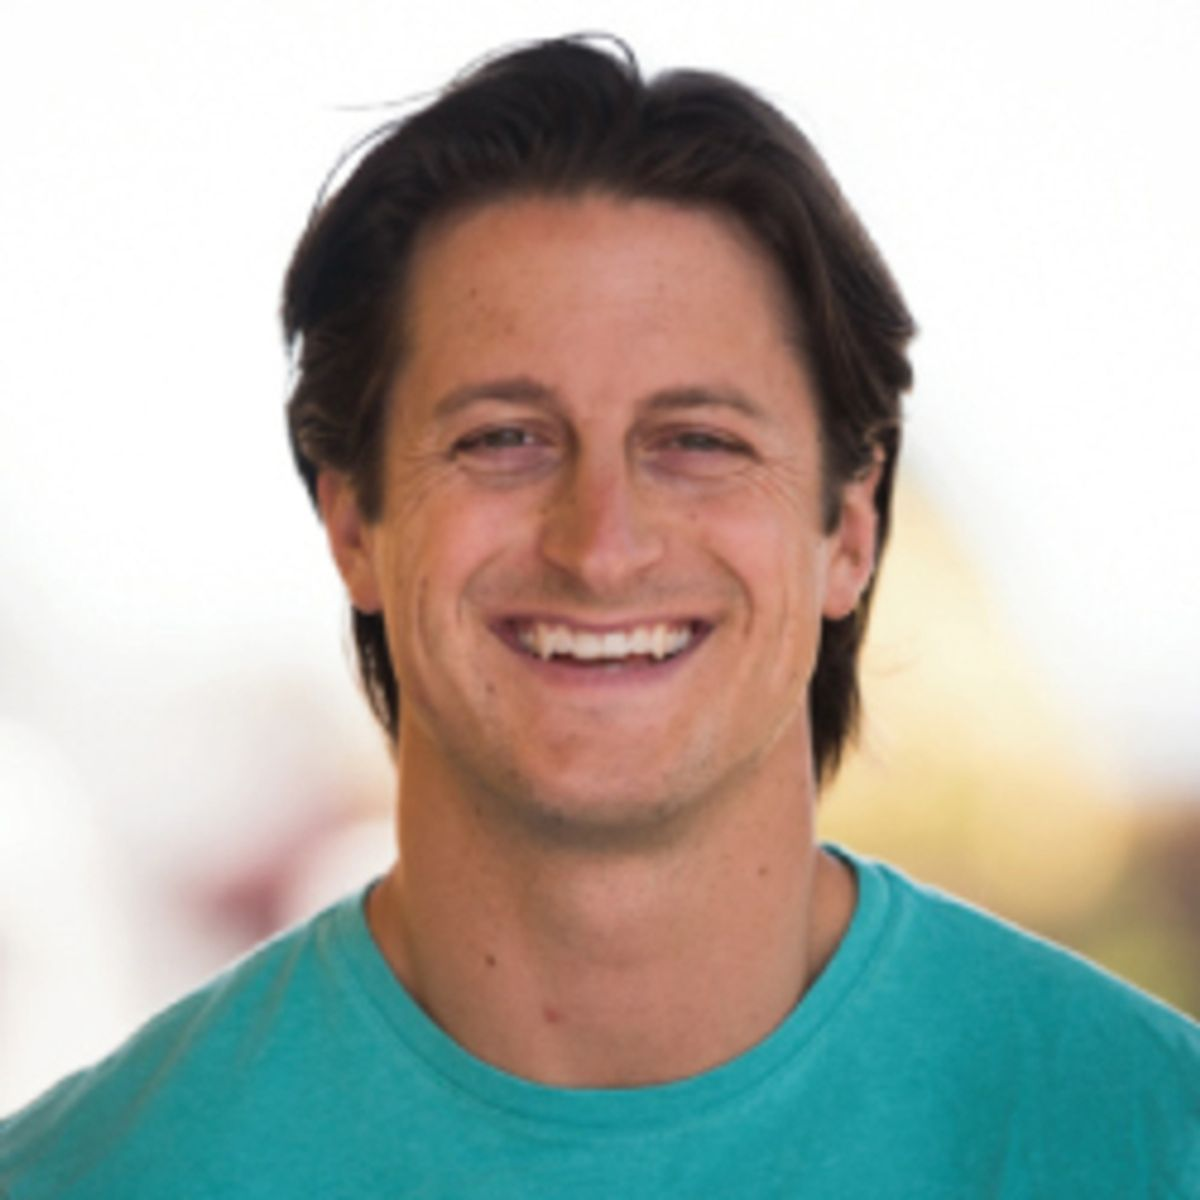 Photo of Christian Ebersol, Associate at Comcast Ventures